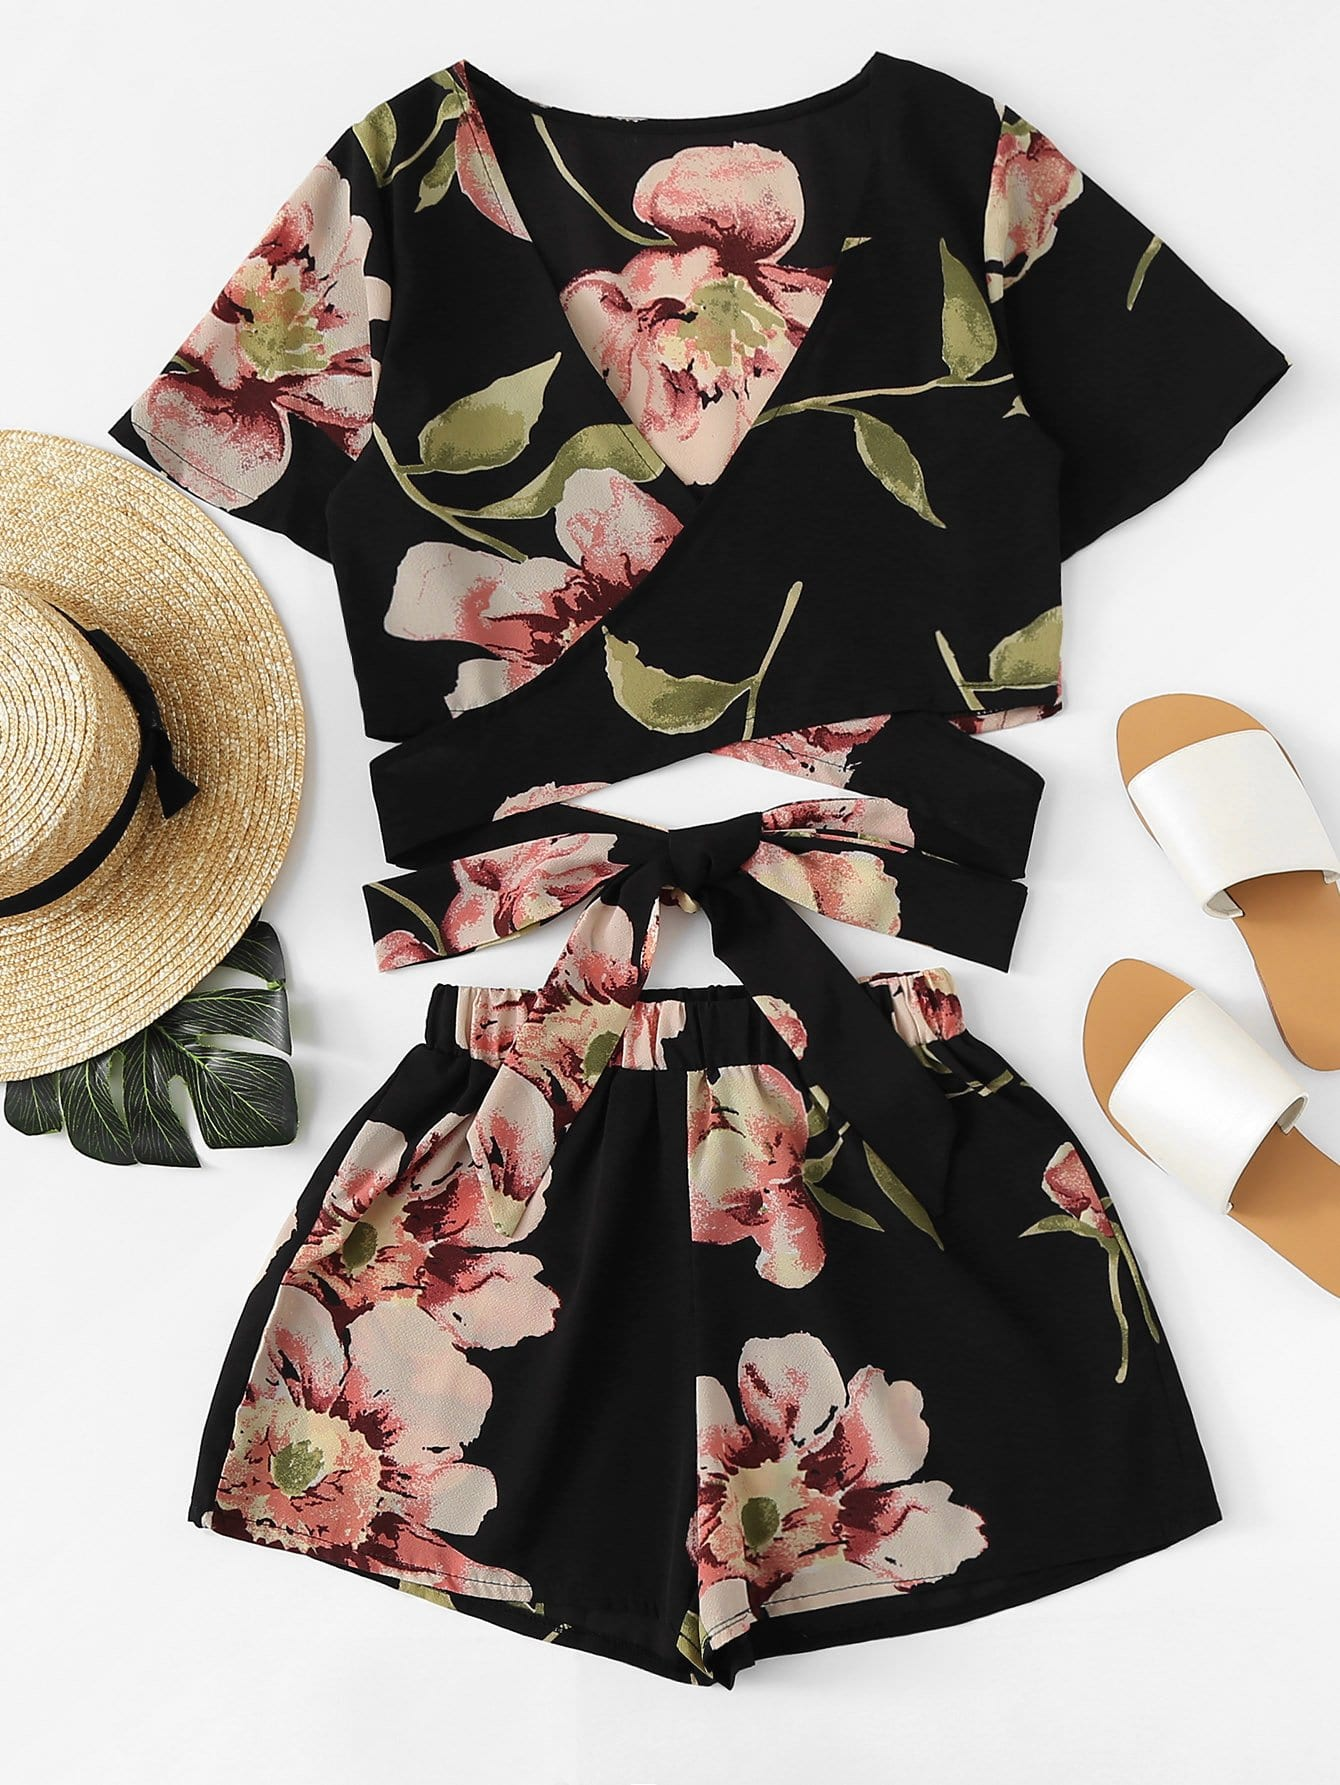 Allover Florals Crisscross Tie Detail Top With Shorts цена и фото